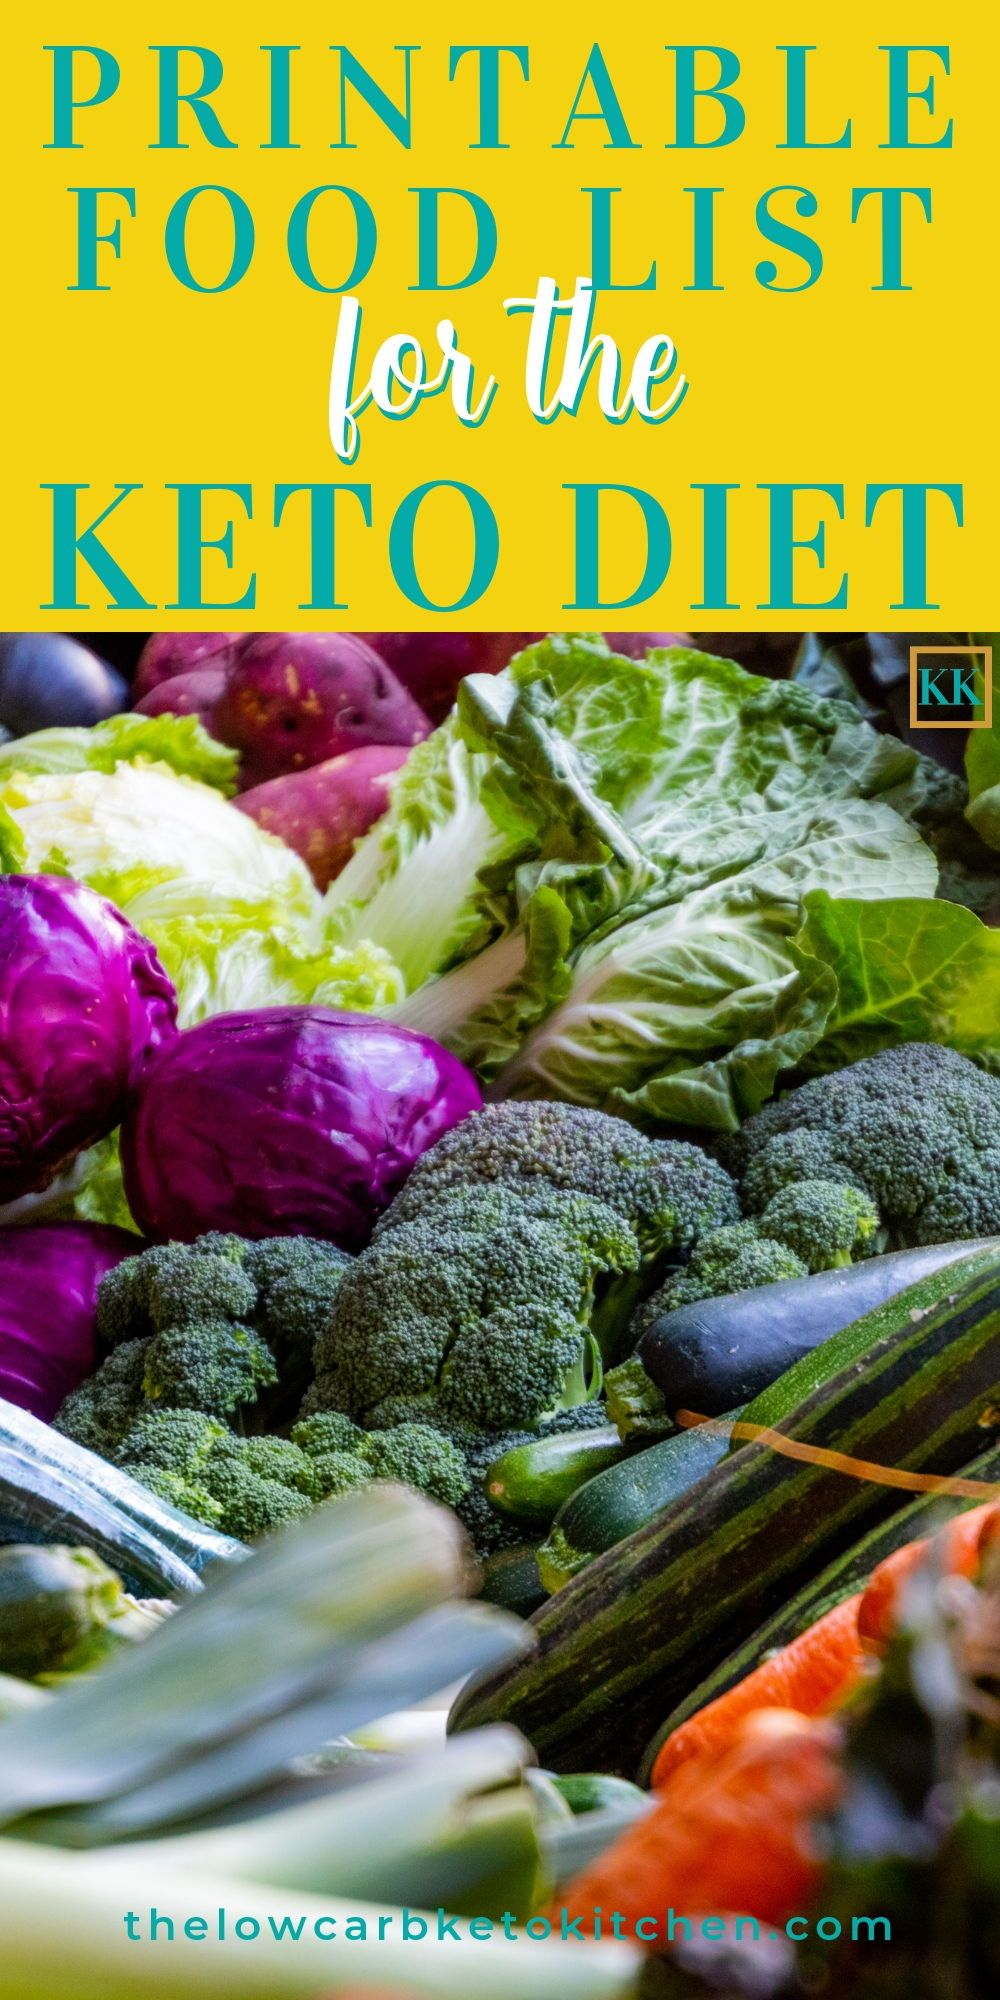 The Ultimate Keto Food List with Printable Keto diet